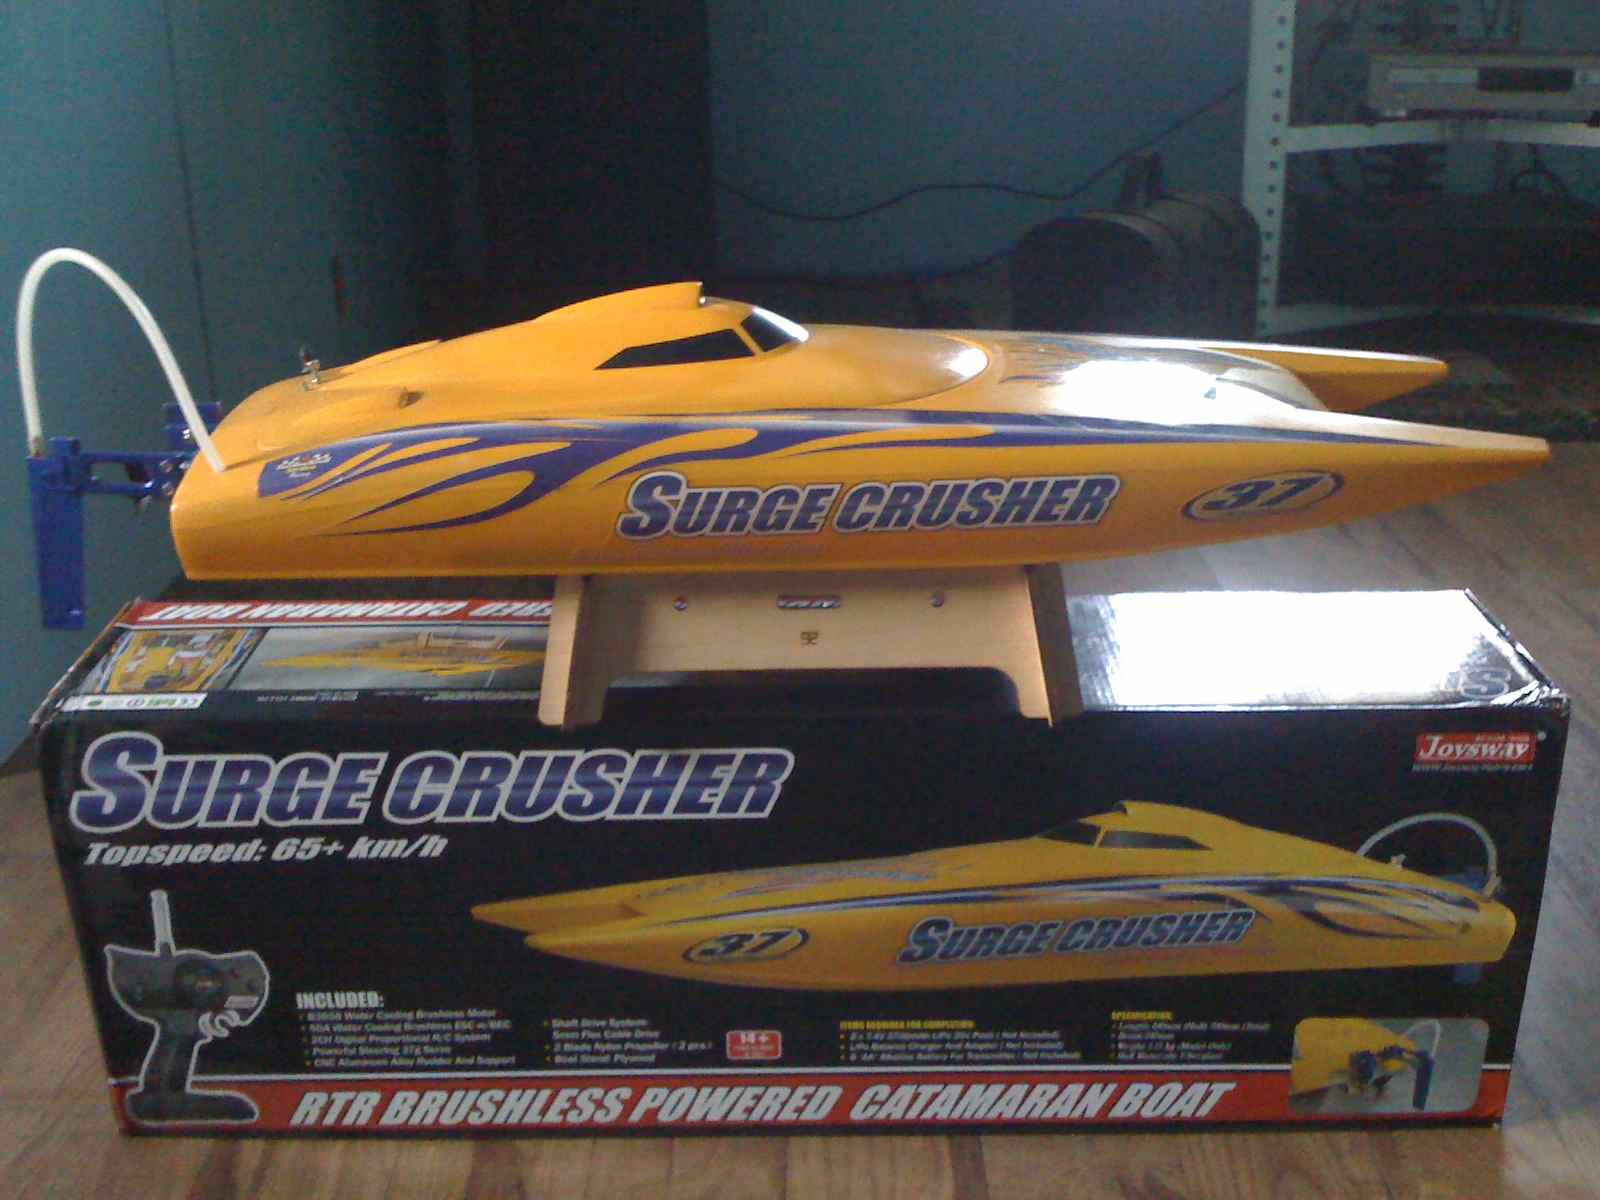 RC BOAT - Page 268 - R/C Tech Forums